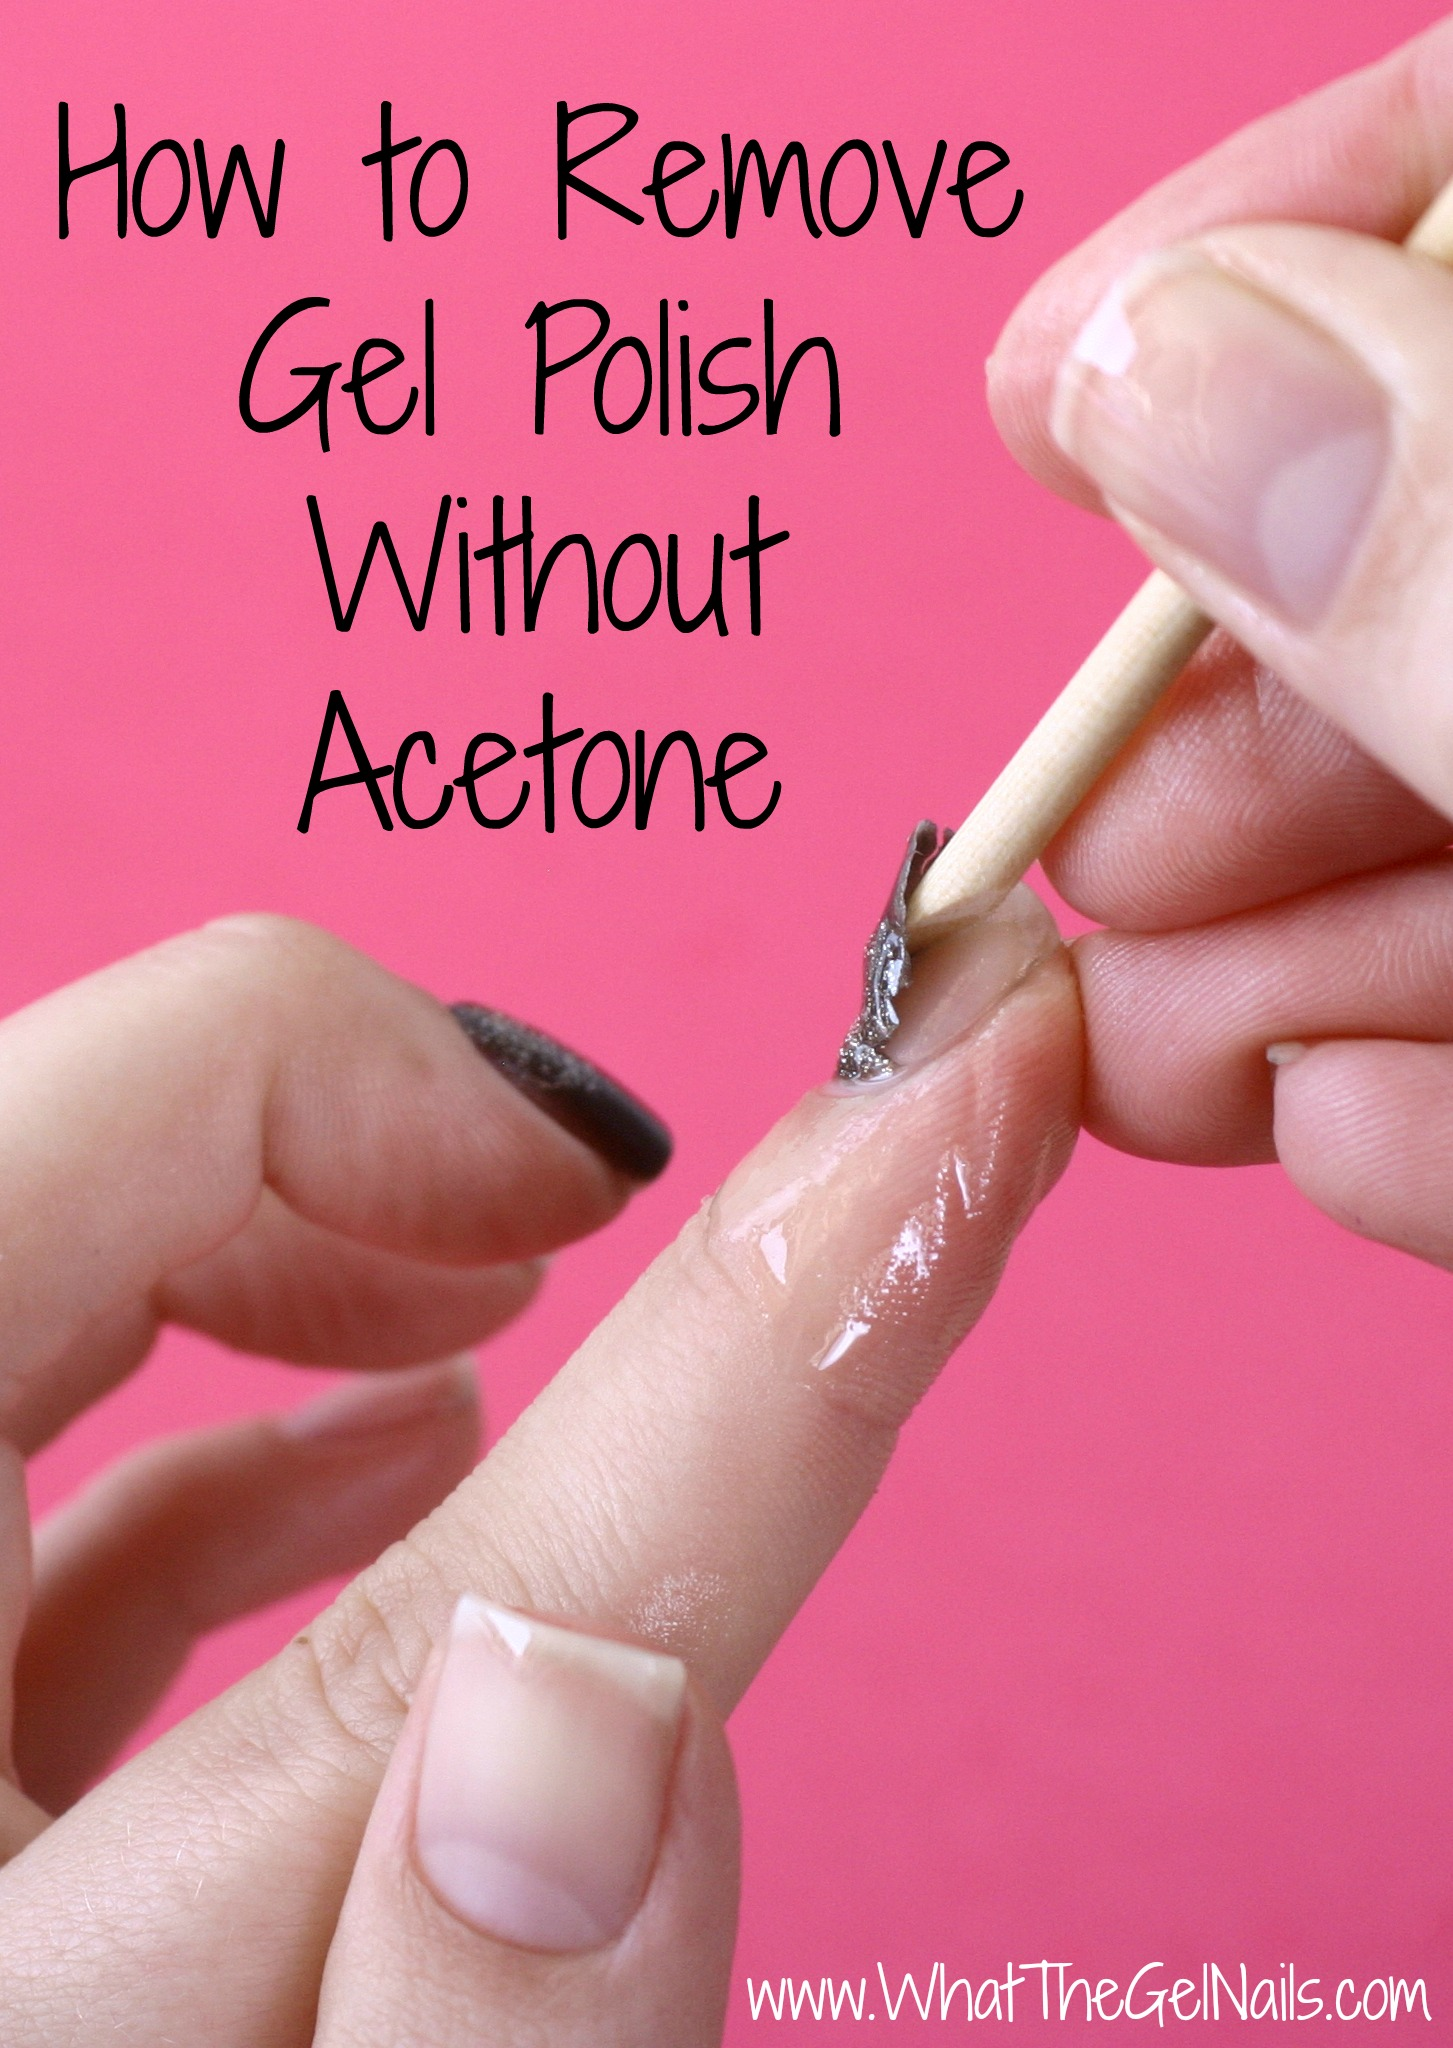 How-to-Remove-Gel-Polish-Without-Acetone.jpg